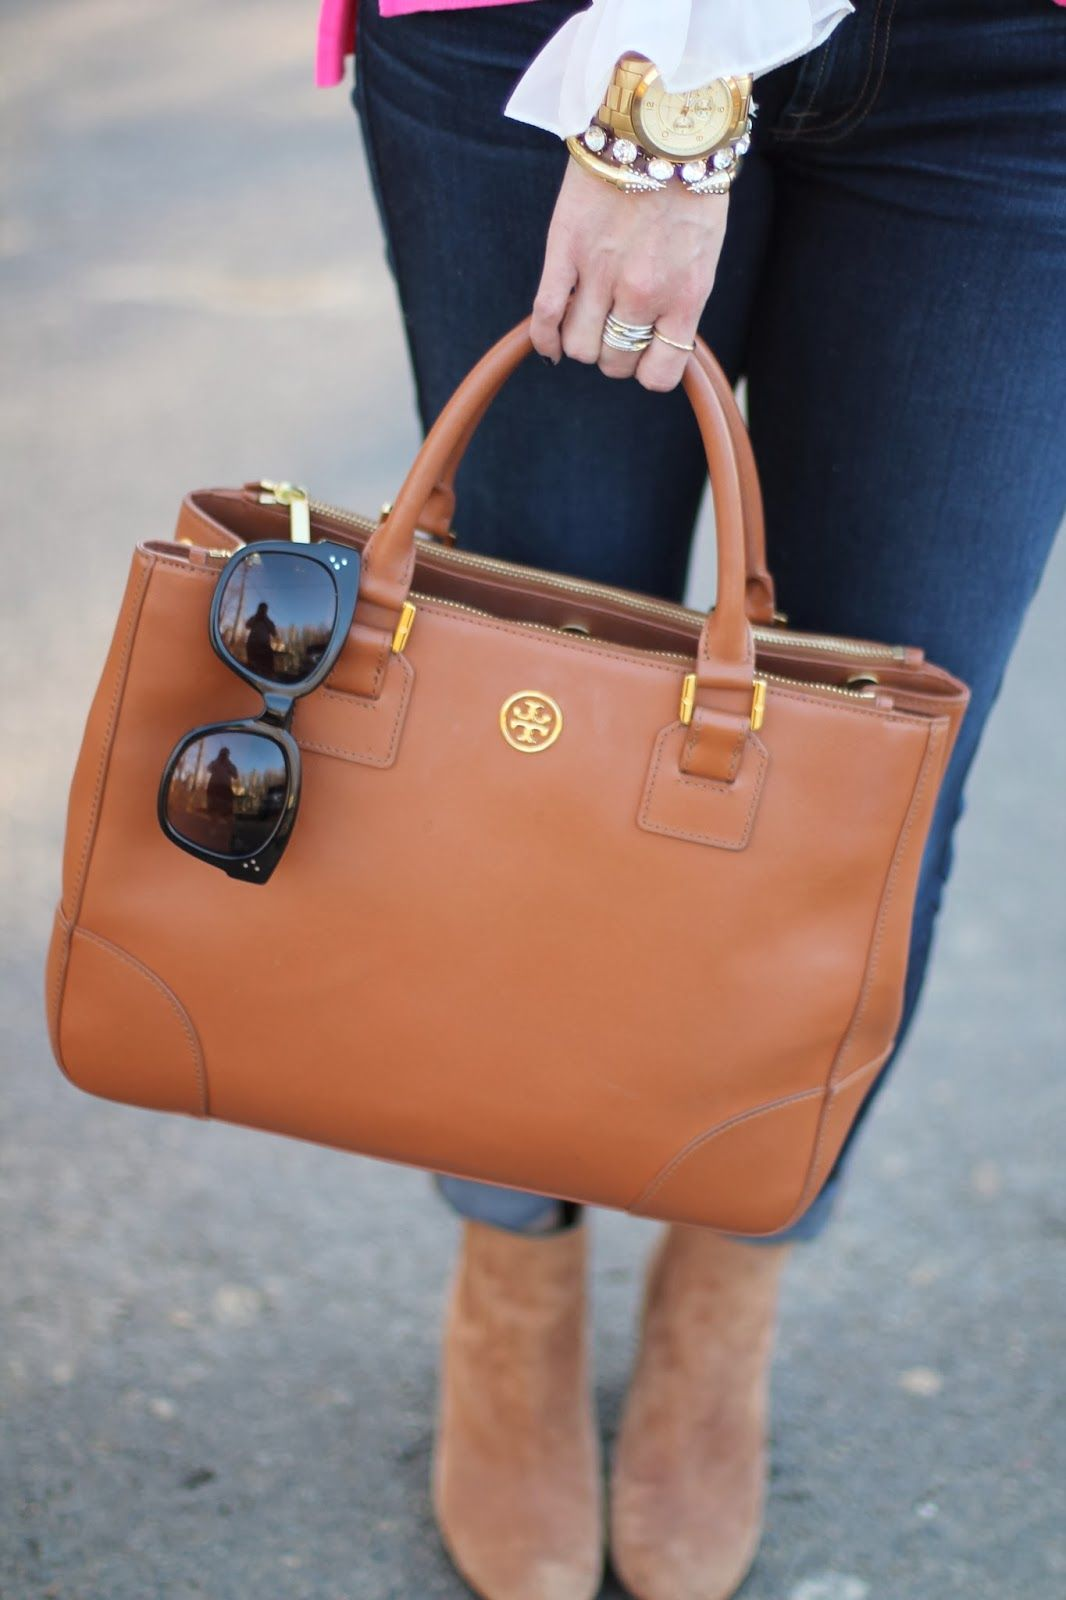 tory burch is a brand name that people associate that